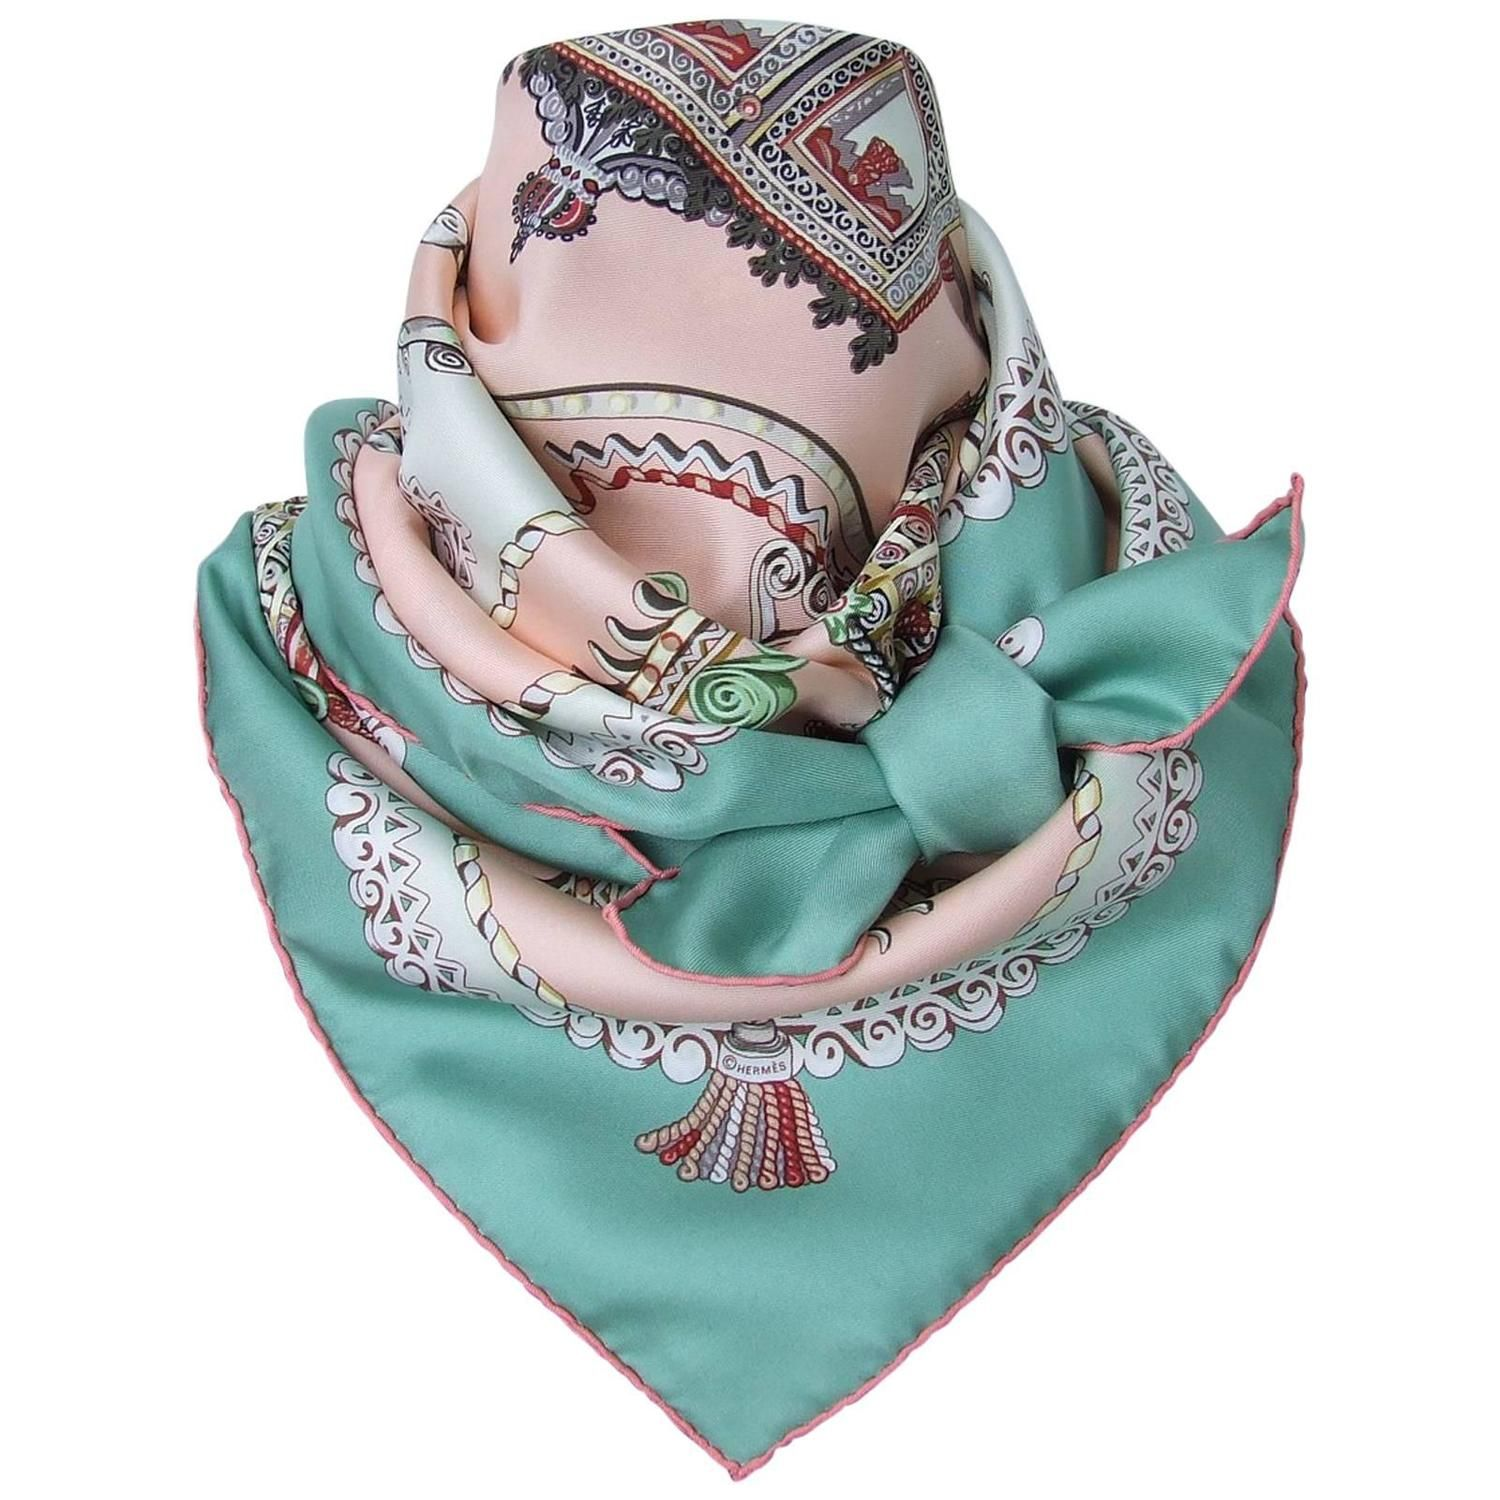 f4661e791d3147 Hermes Silk Scarf Paperoles Horses Claudia Mayr Green Pink 90 cm | From a  collection of